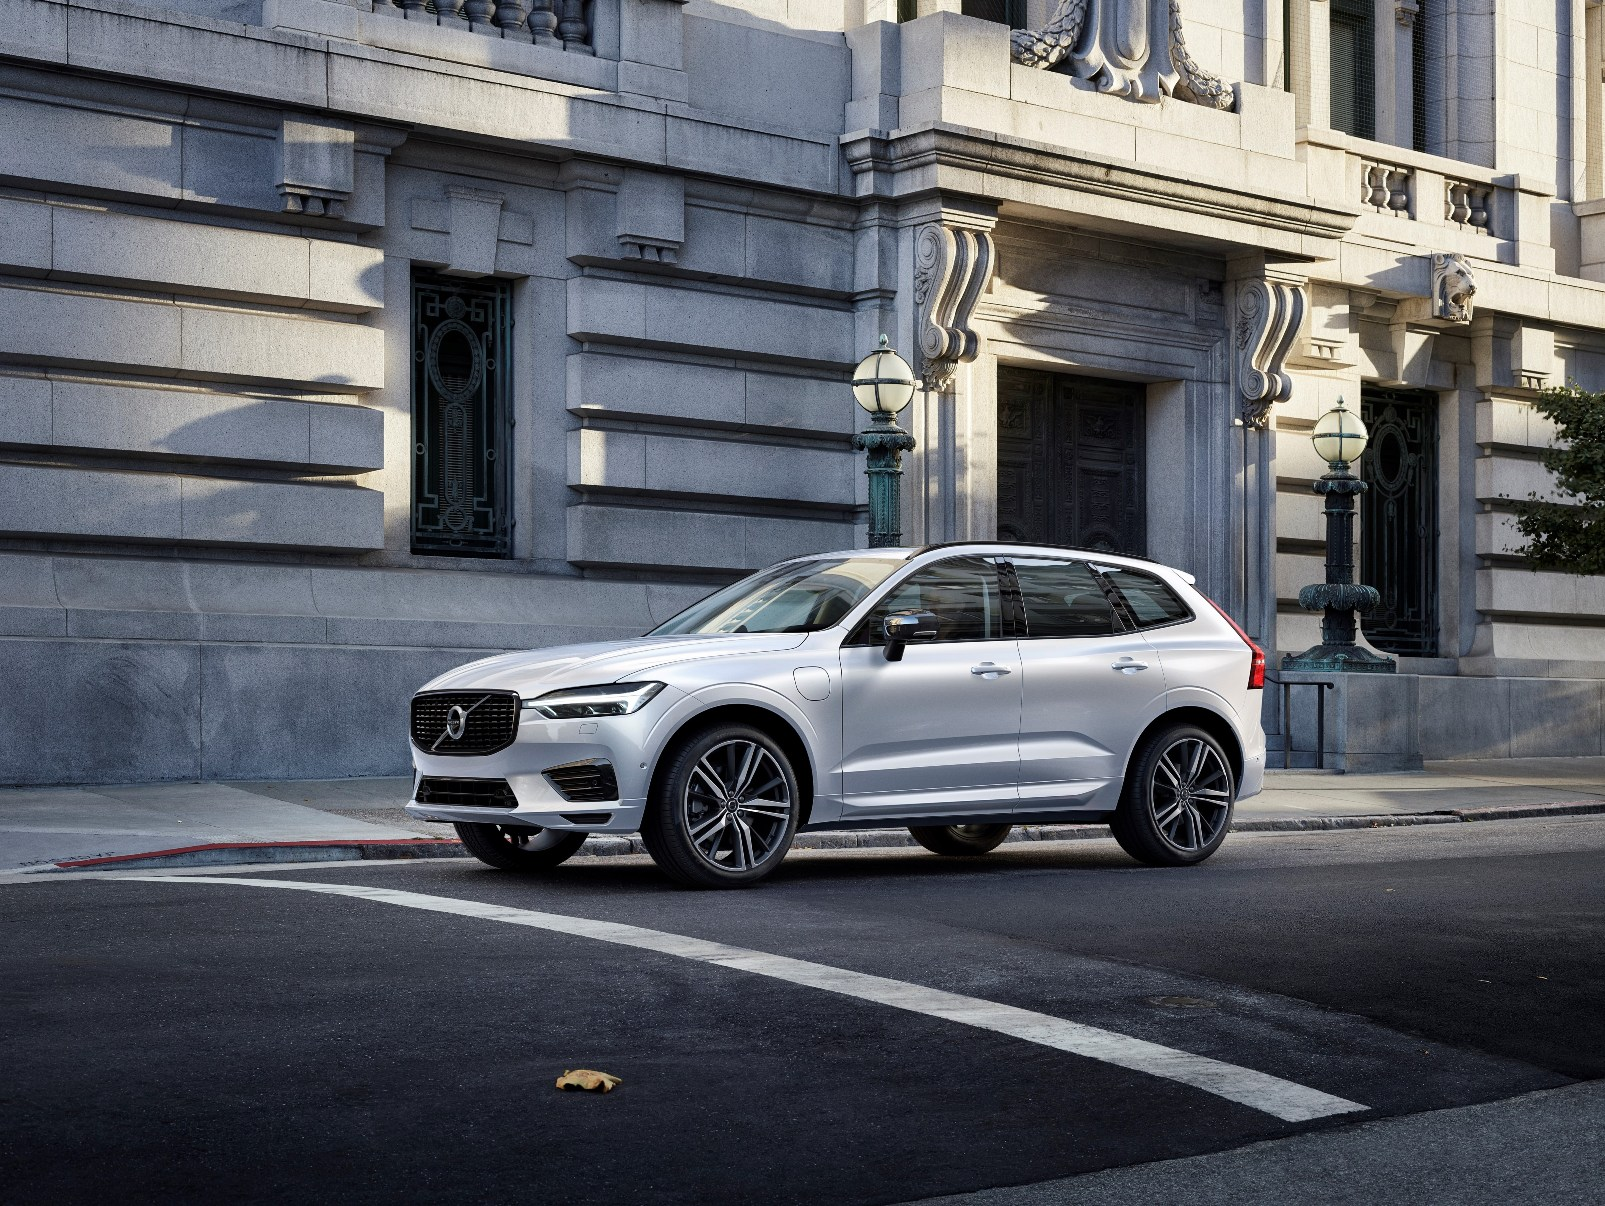 Xc60 R Design Recharge, In Crystal White Pearl